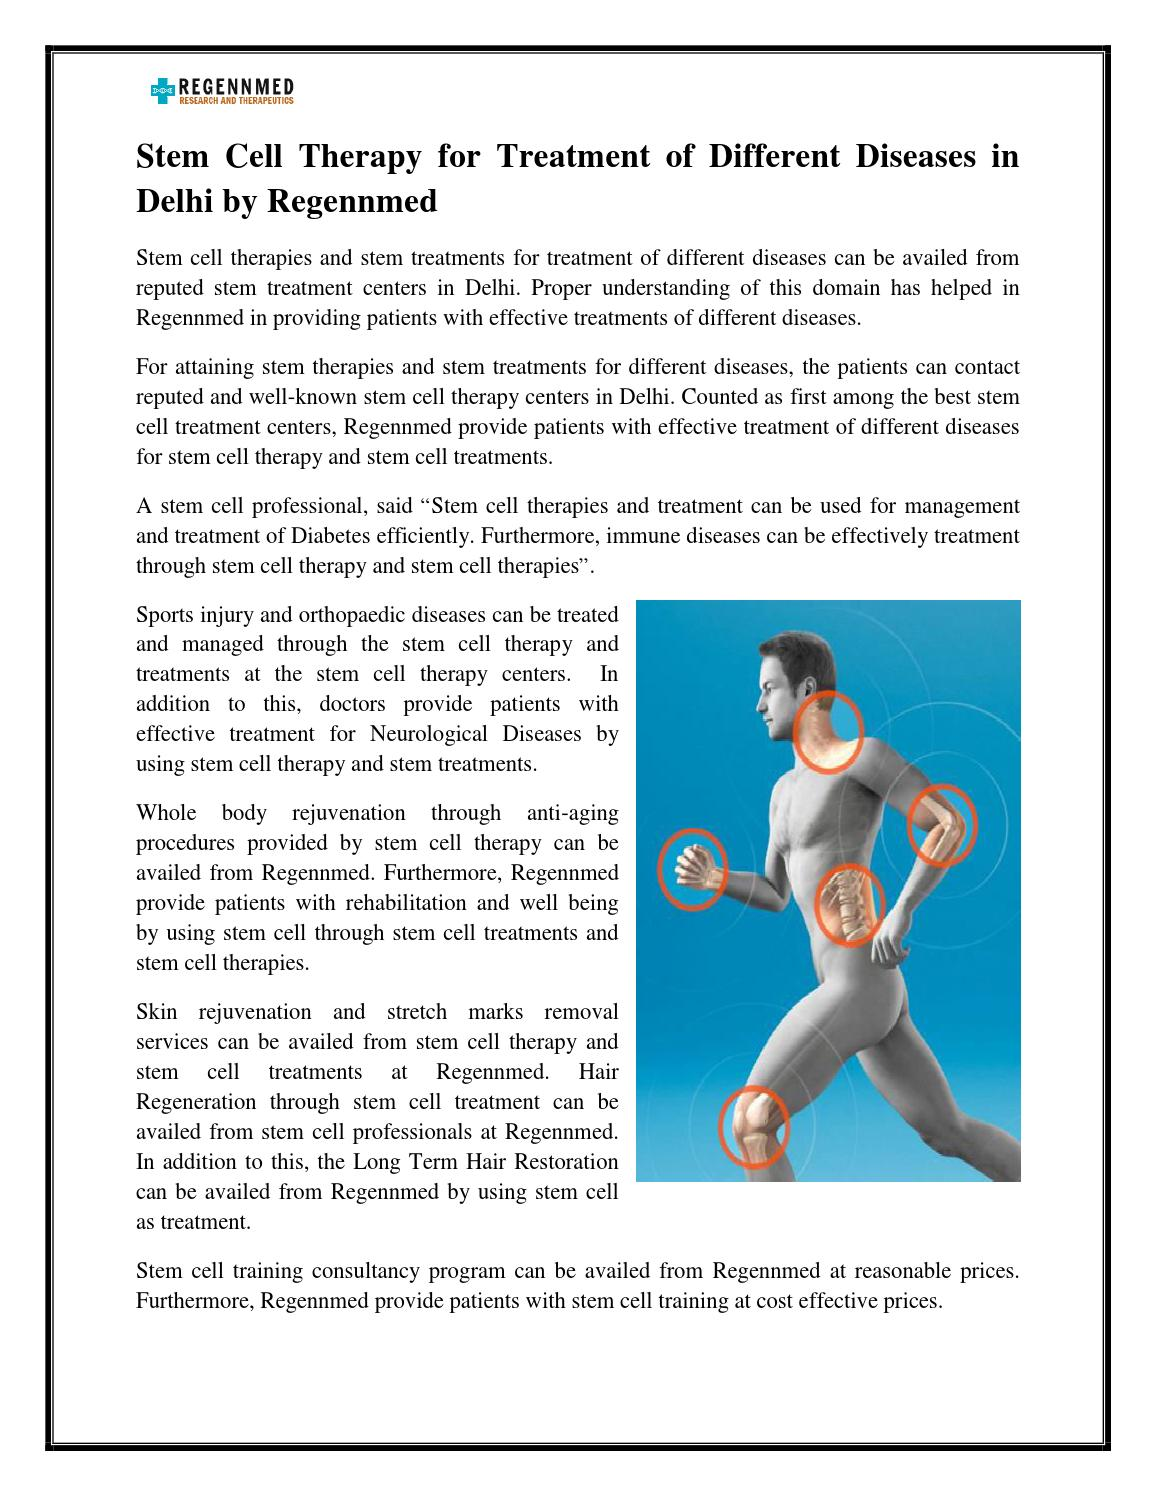 Stem Cell Therapy For Treatment Of Different Diseases In Delhi By Regennmed By Regennmed Issuu